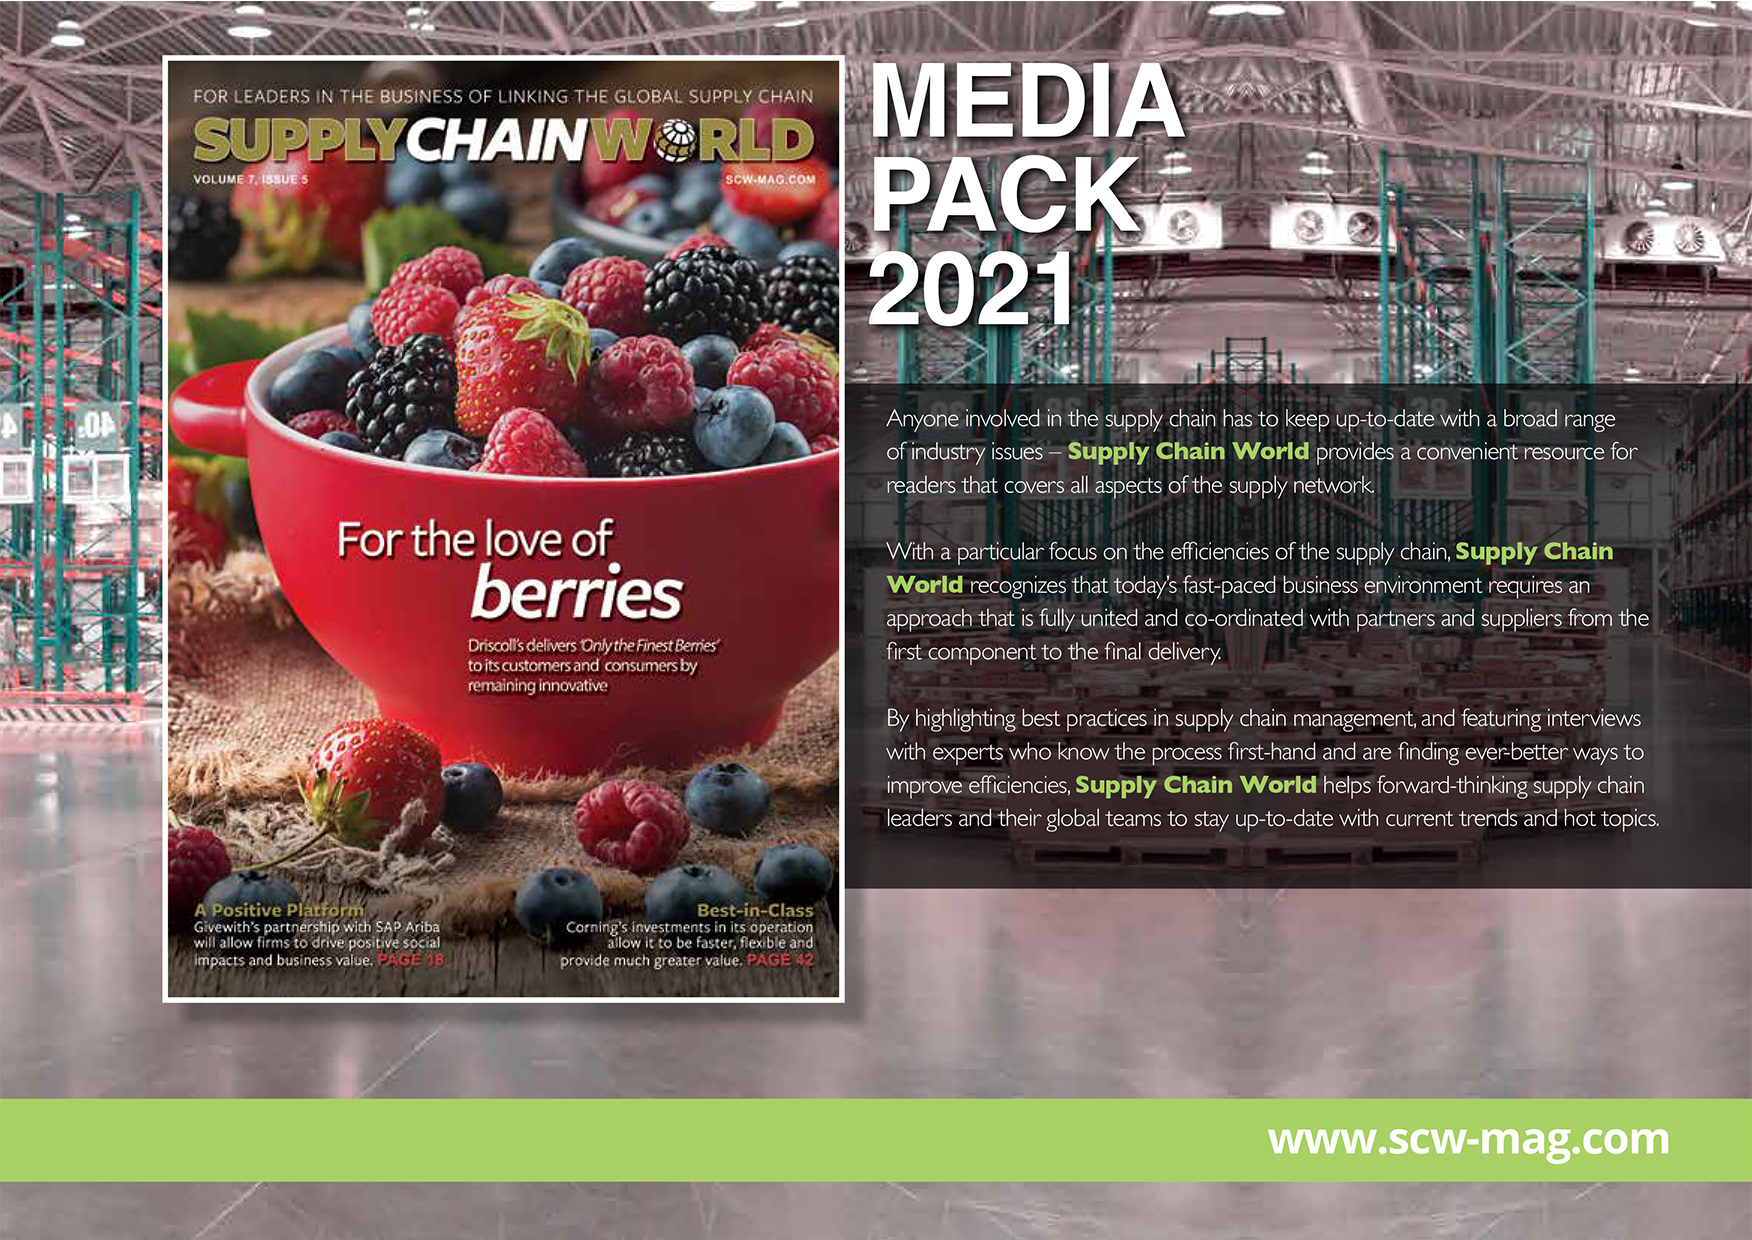 SCW Media Pack 2021 - Front Cover